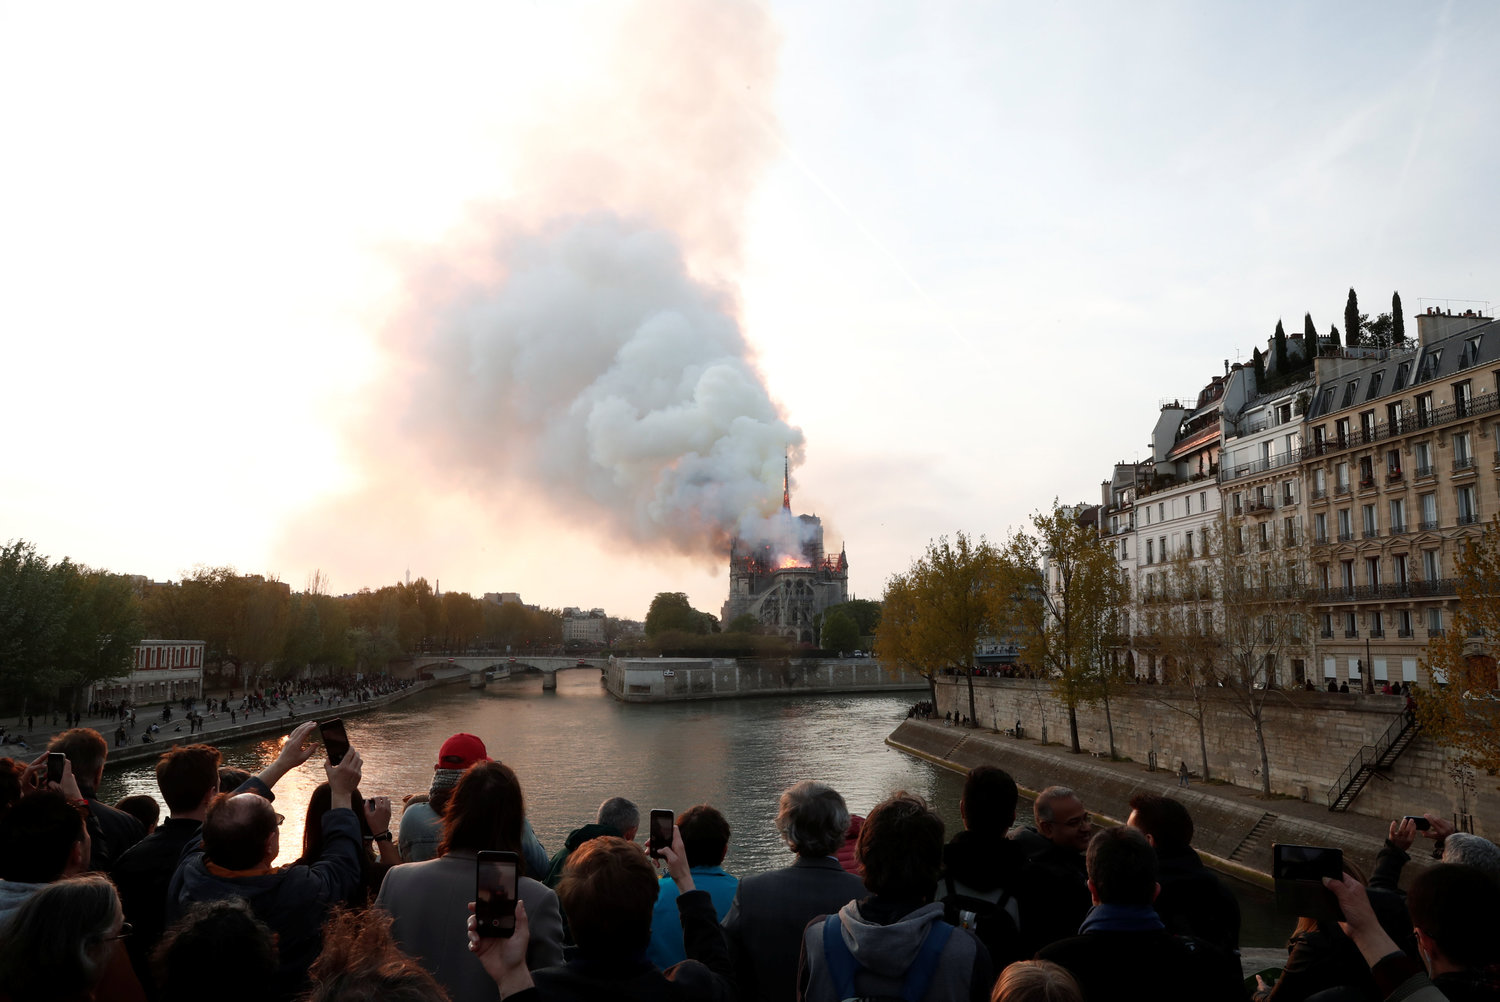 People look on as flames and smoke billow from the Notre Dame Cathedral after a fire broke out in Paris April 15.